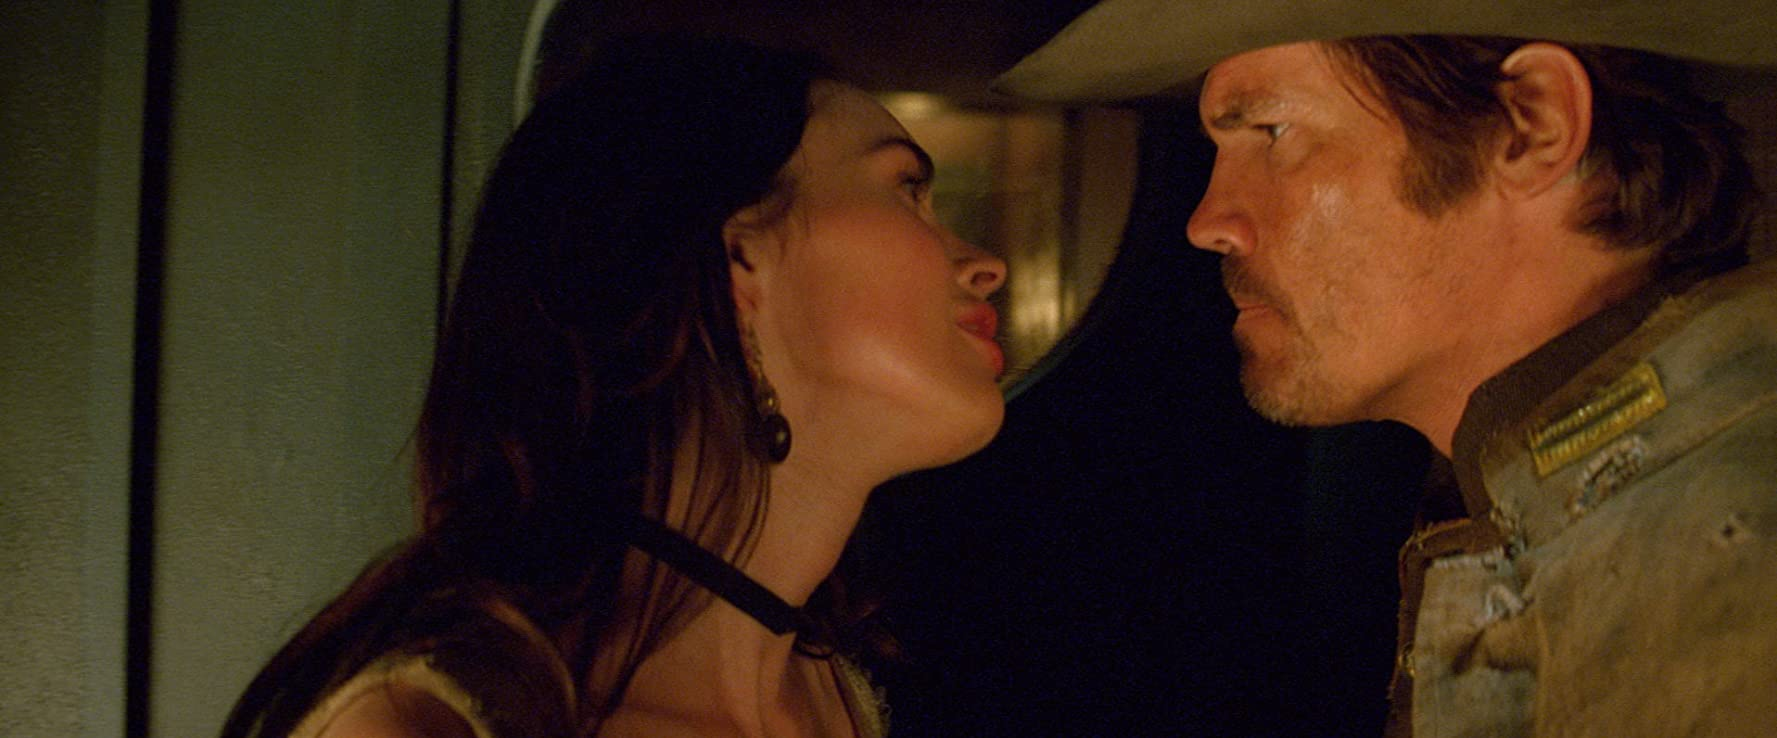 Josh Brolin and Megan Fox in Jonah Hex (2010)